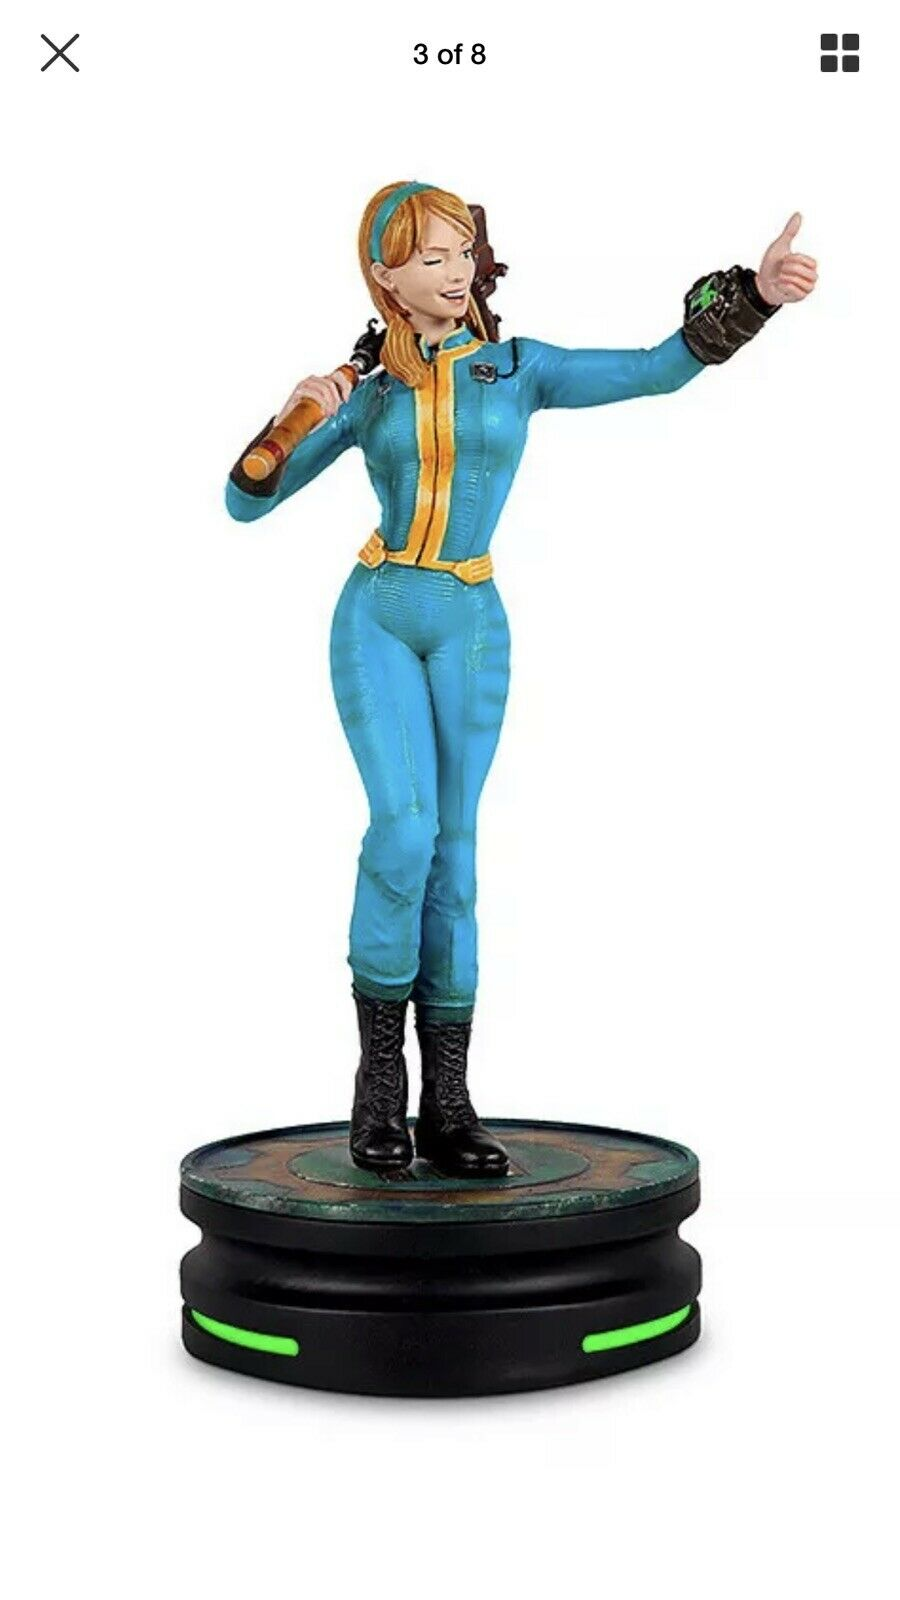 Moderne Icons  8 Fallout Vault Girl Statue 9  Tec figurine base New 2019 in (environ 5128.26 cm) main